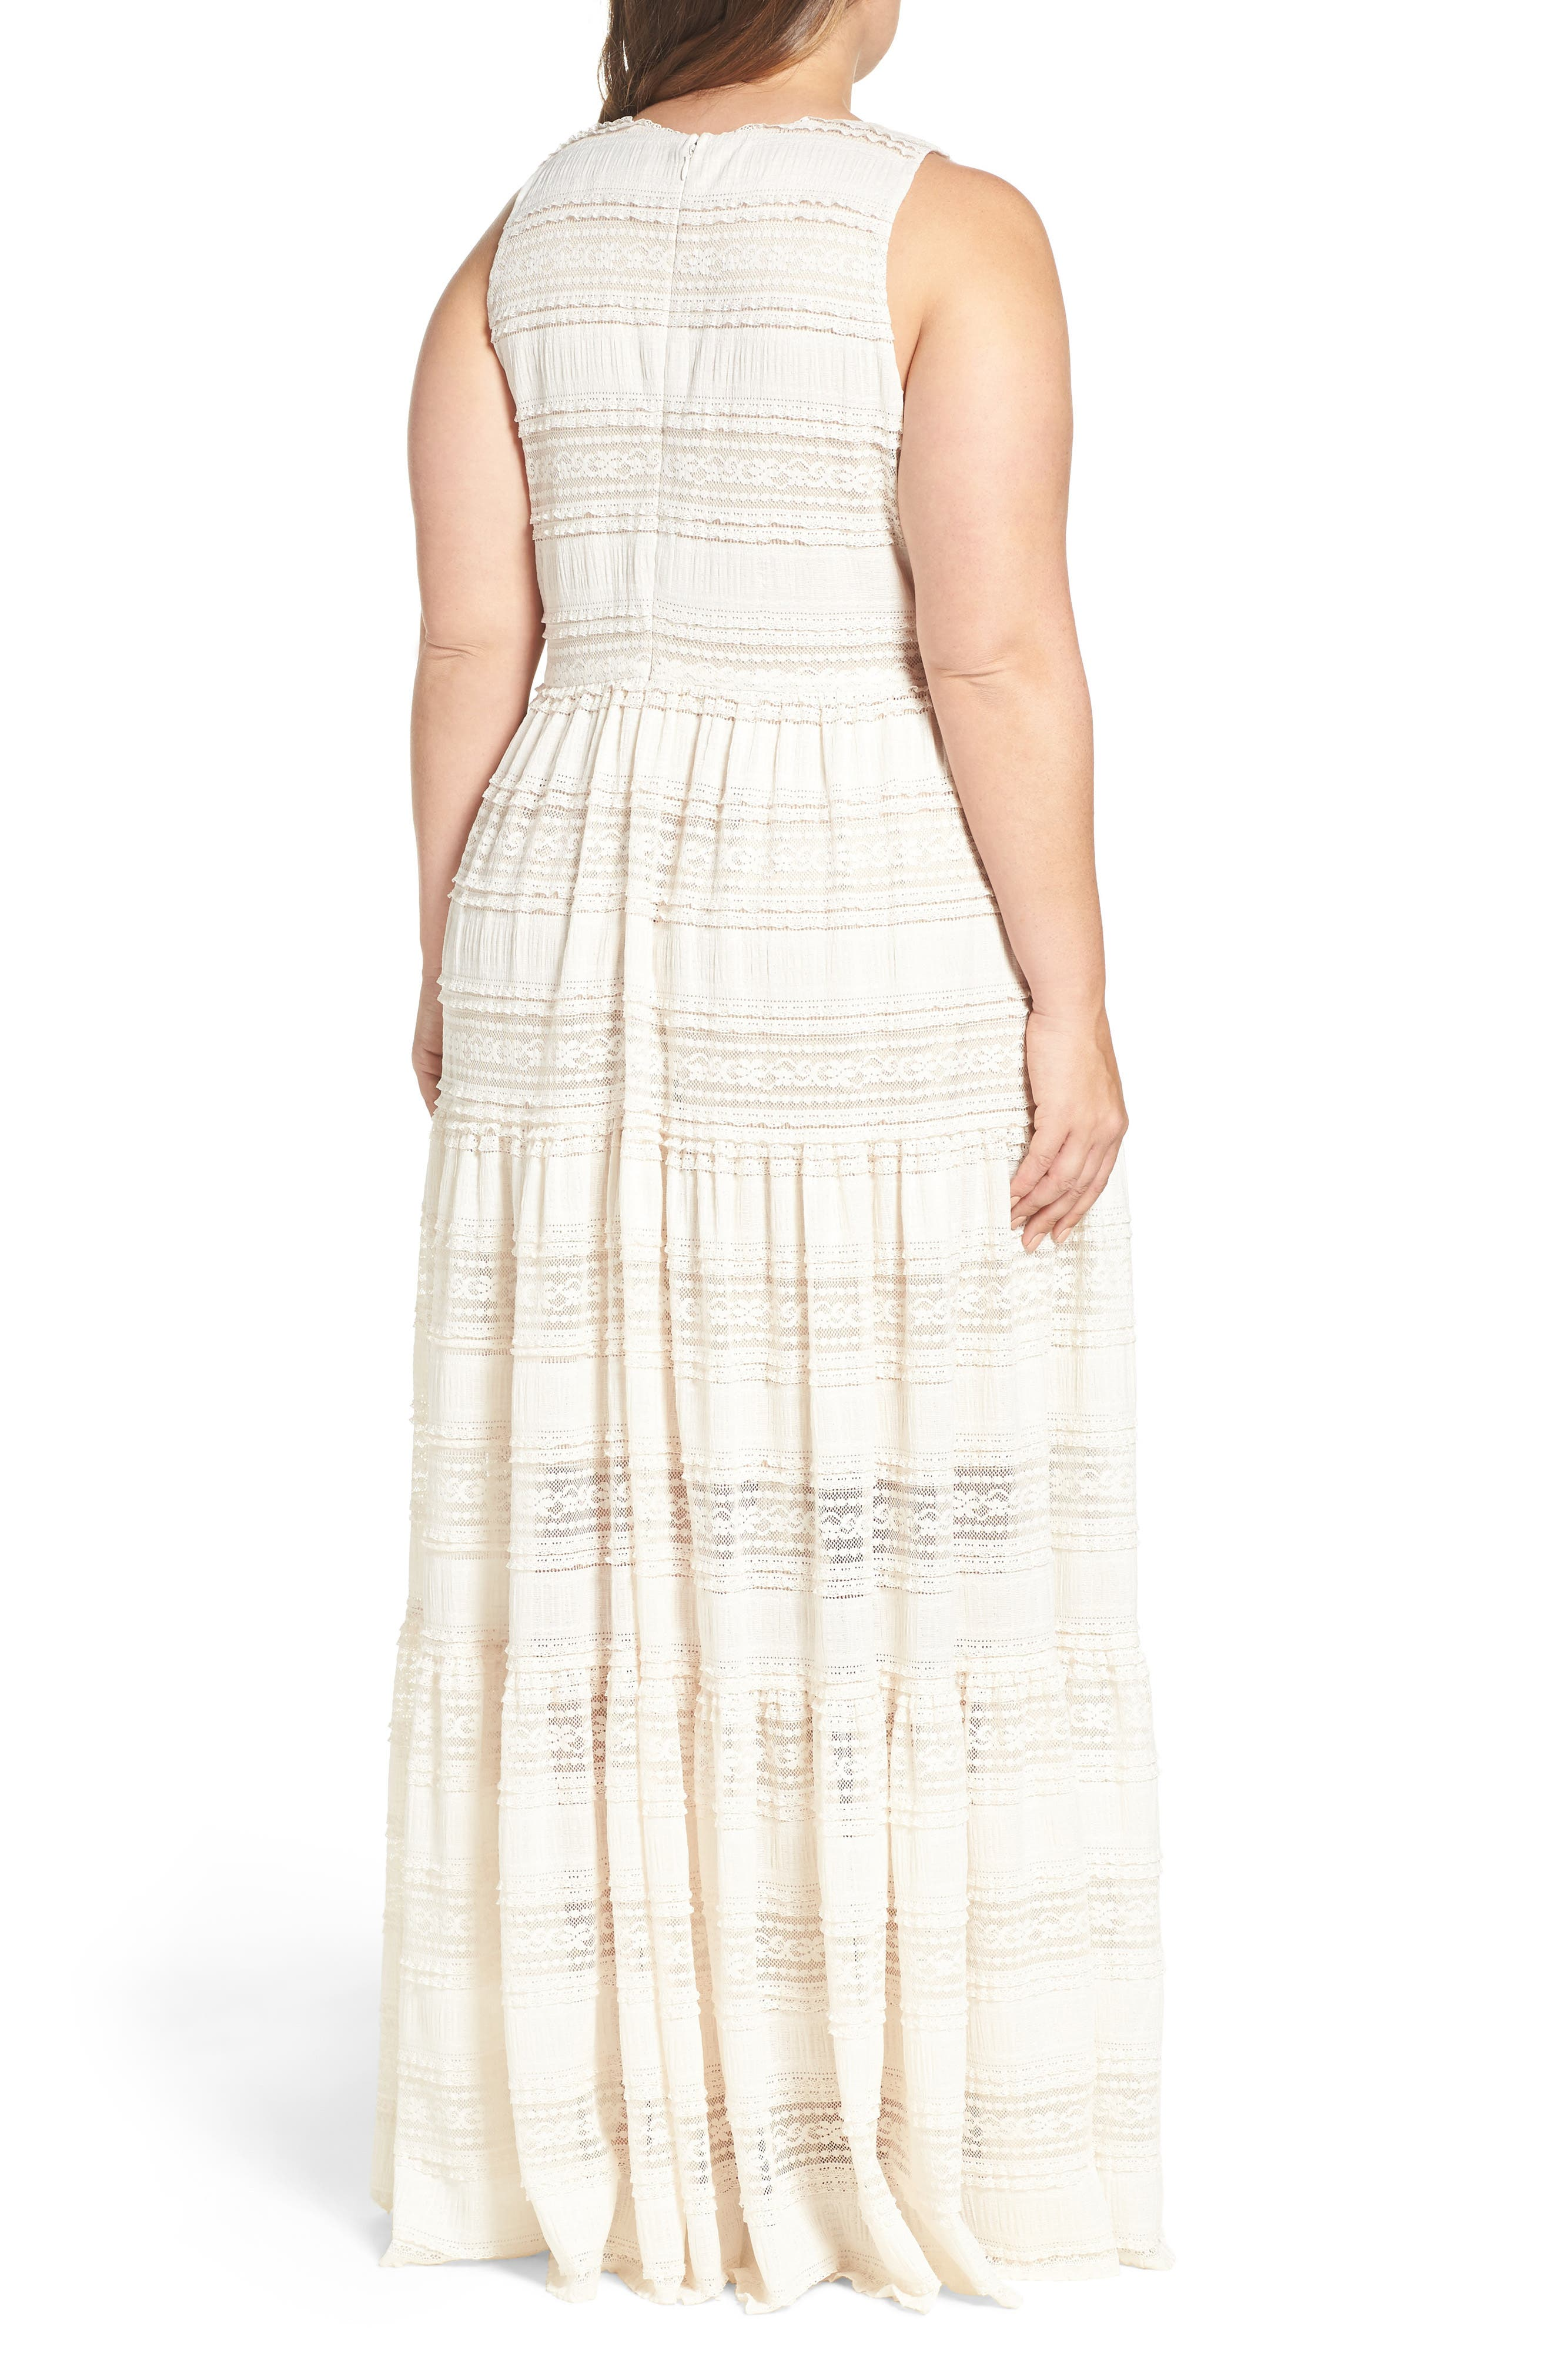 Tiered Lace Maxi Dress,                             Alternate thumbnail 3, color,                             Ivory